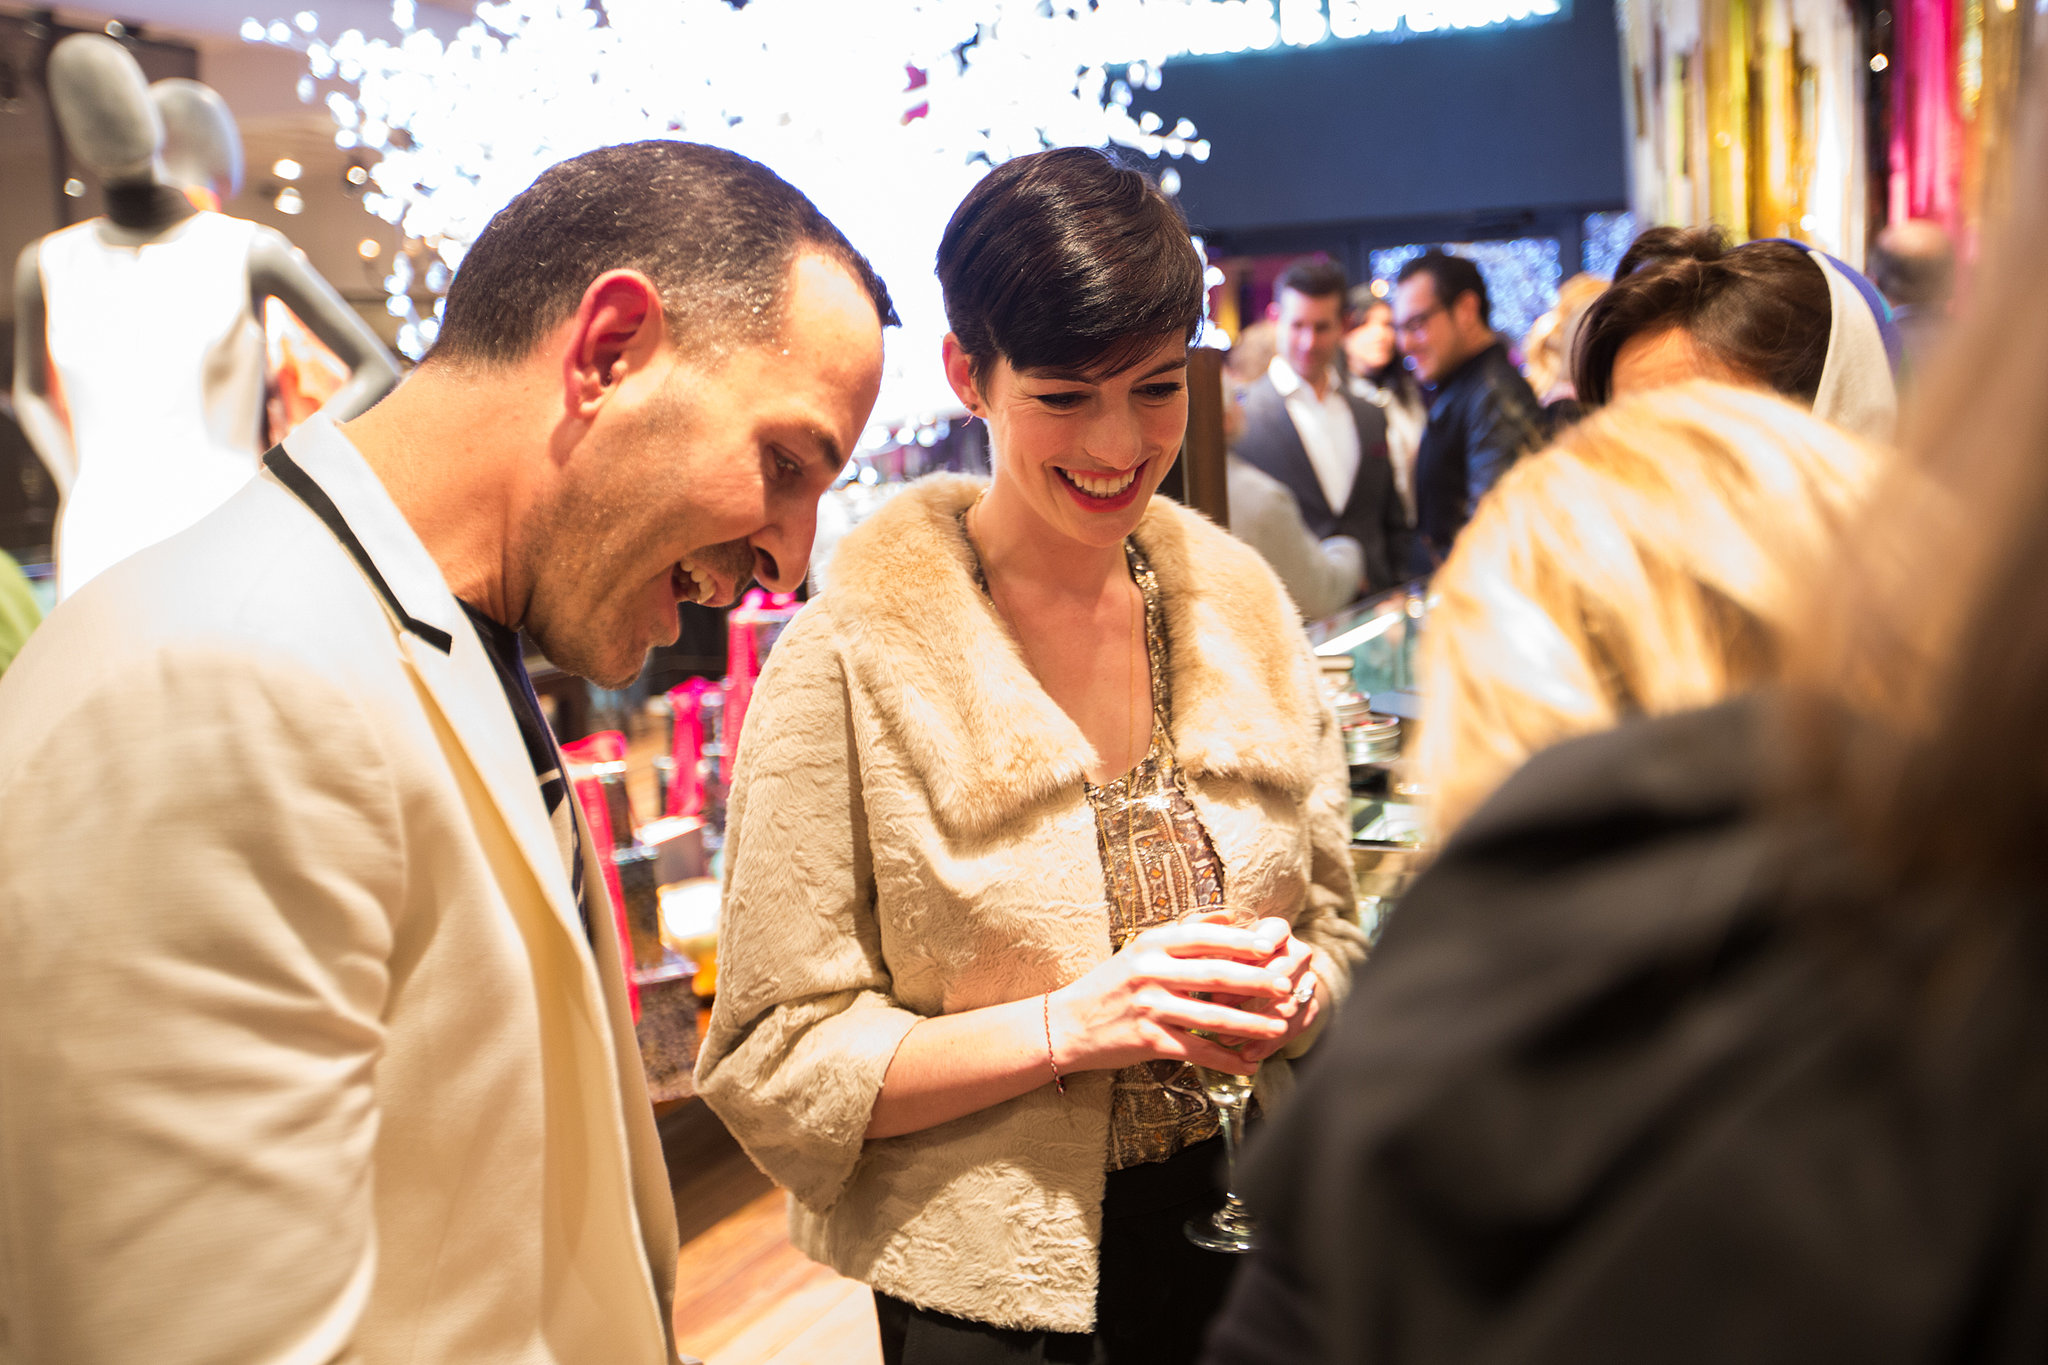 Anne Hathaway at the Bonjour Y'all party in Dallas. Photo courtesy of Forty Five Ten